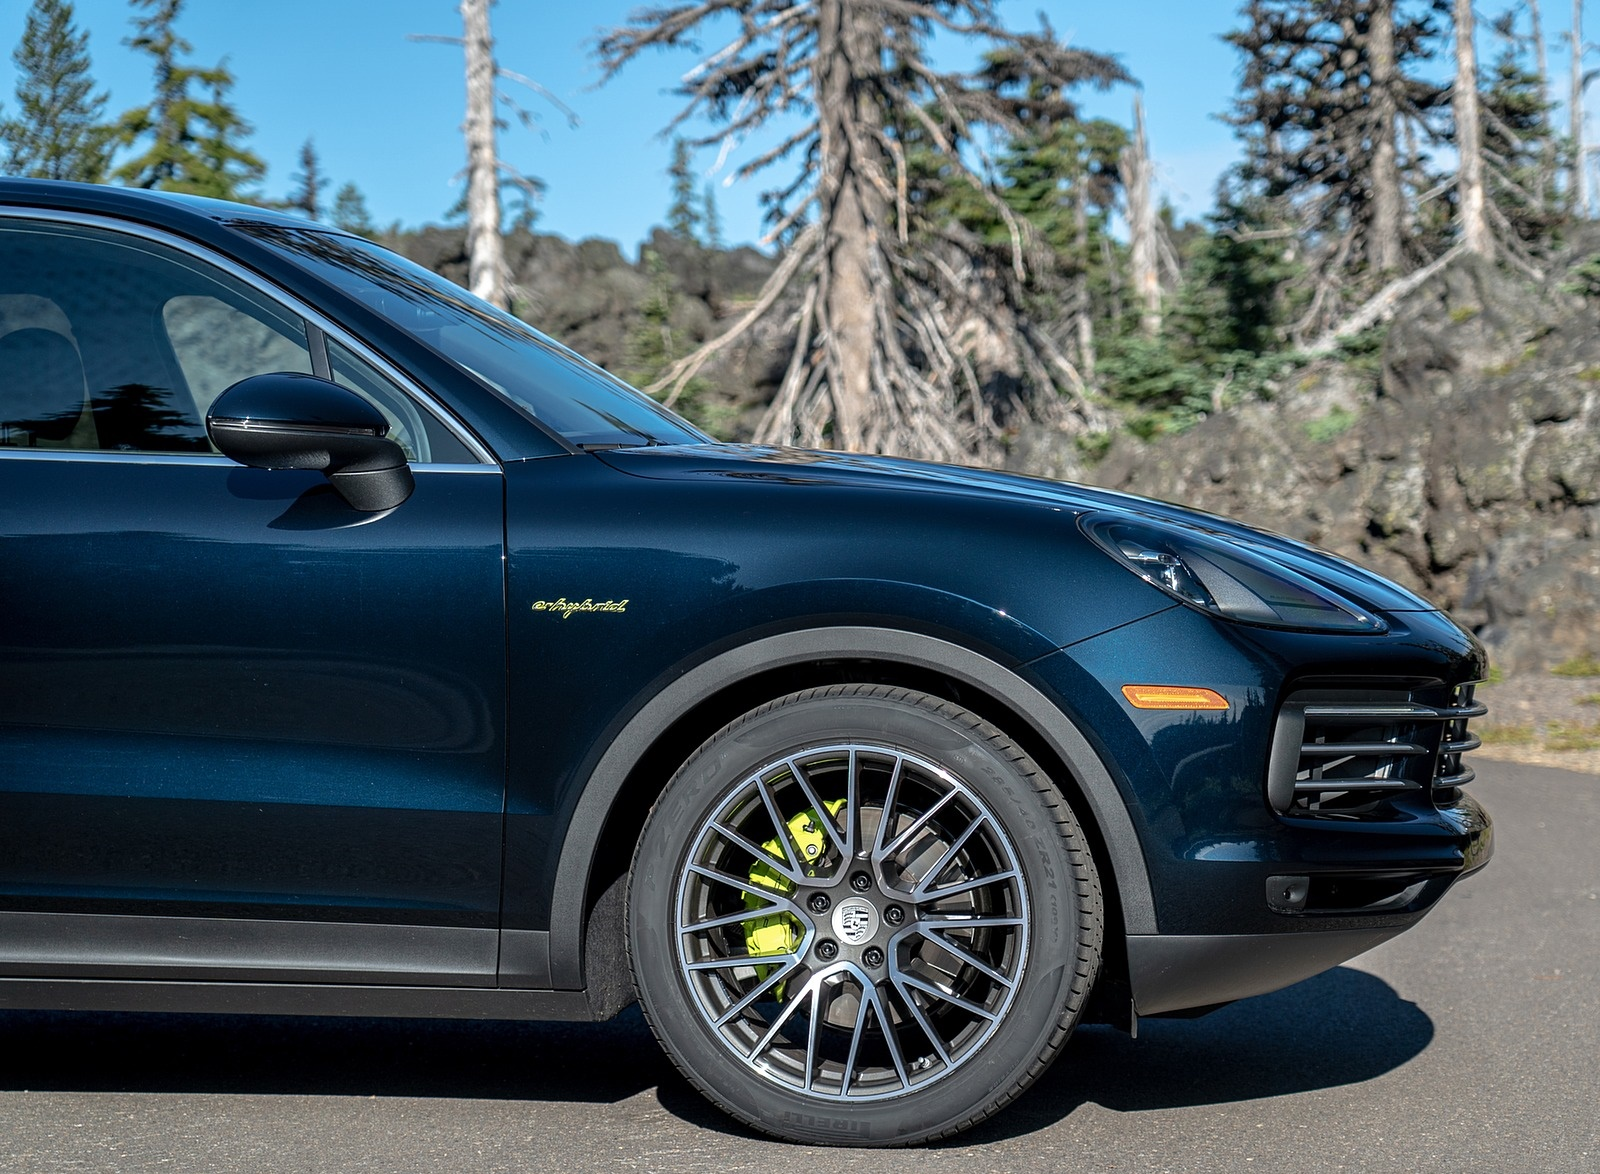 2019 Porsche Cayenne E-Hybrid (US-Spec) Wheel Wallpapers #23 of 37